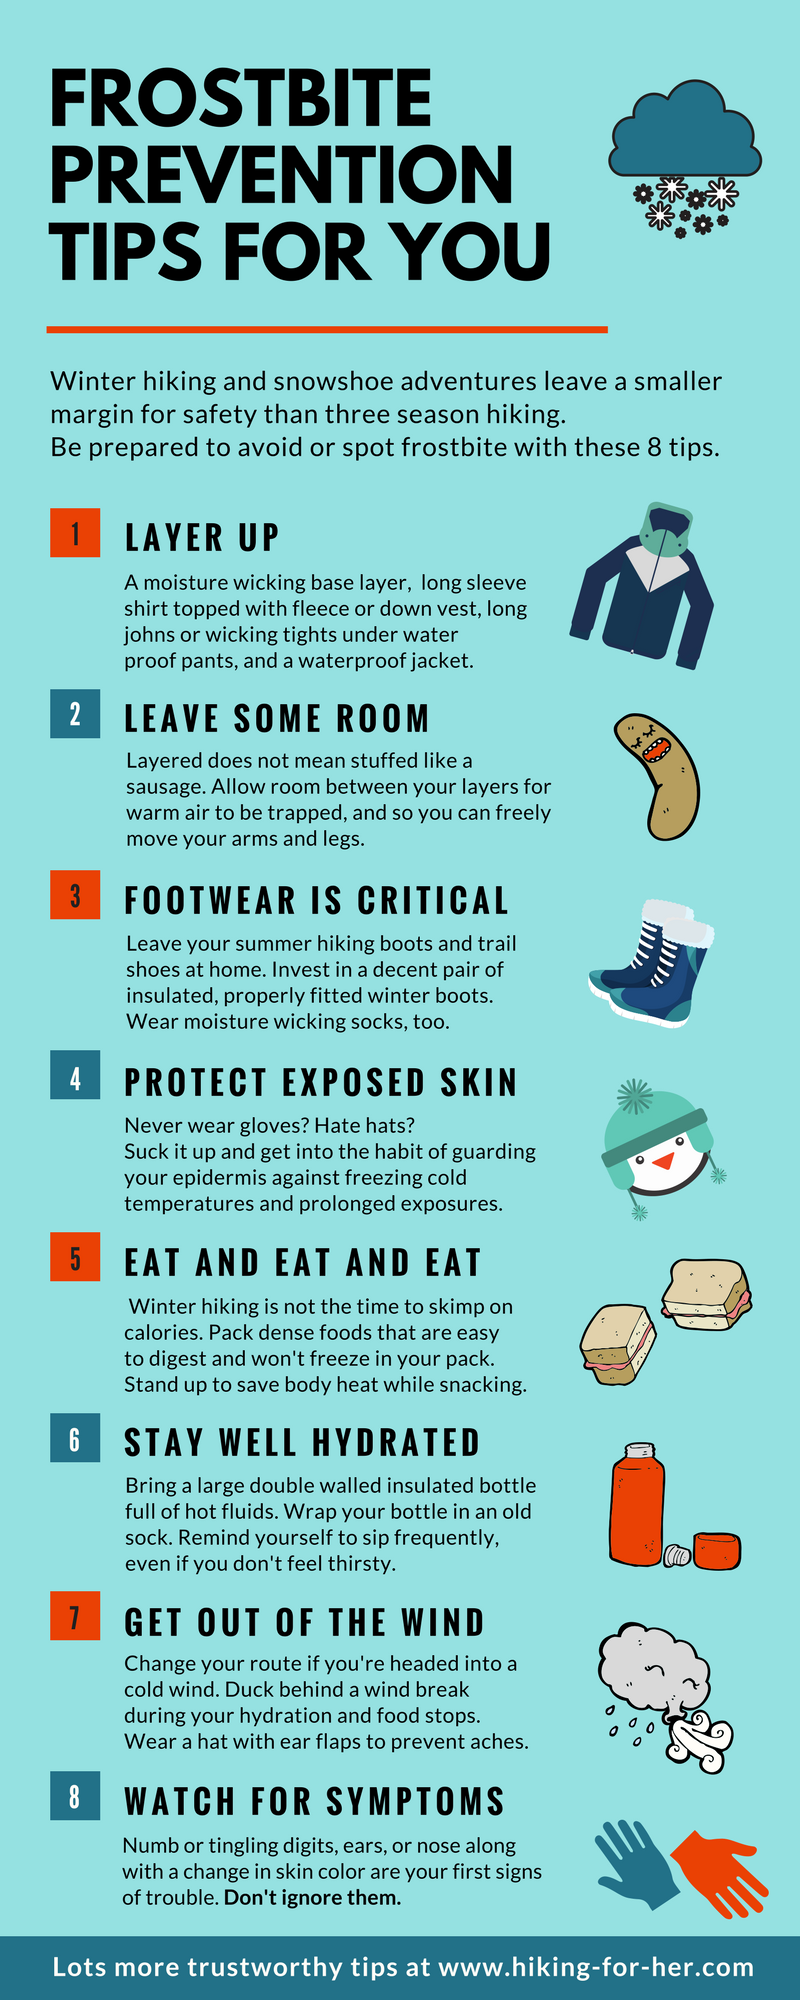 Frostbite Prevention Tips Best Ways To Avoid Trouble On